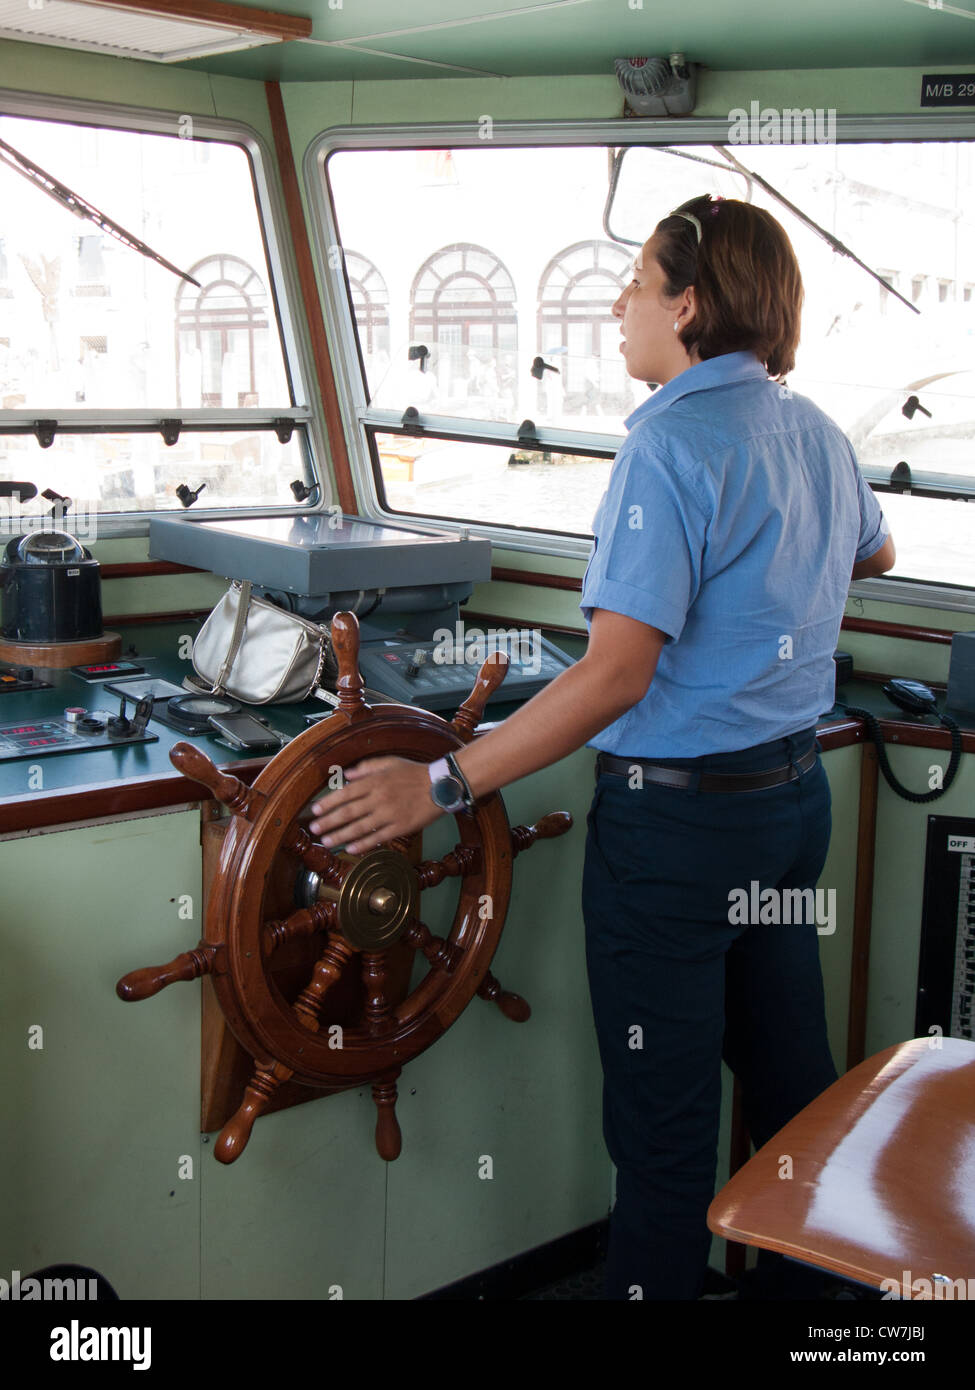 Female driver operating a vaporetto - Stock Image